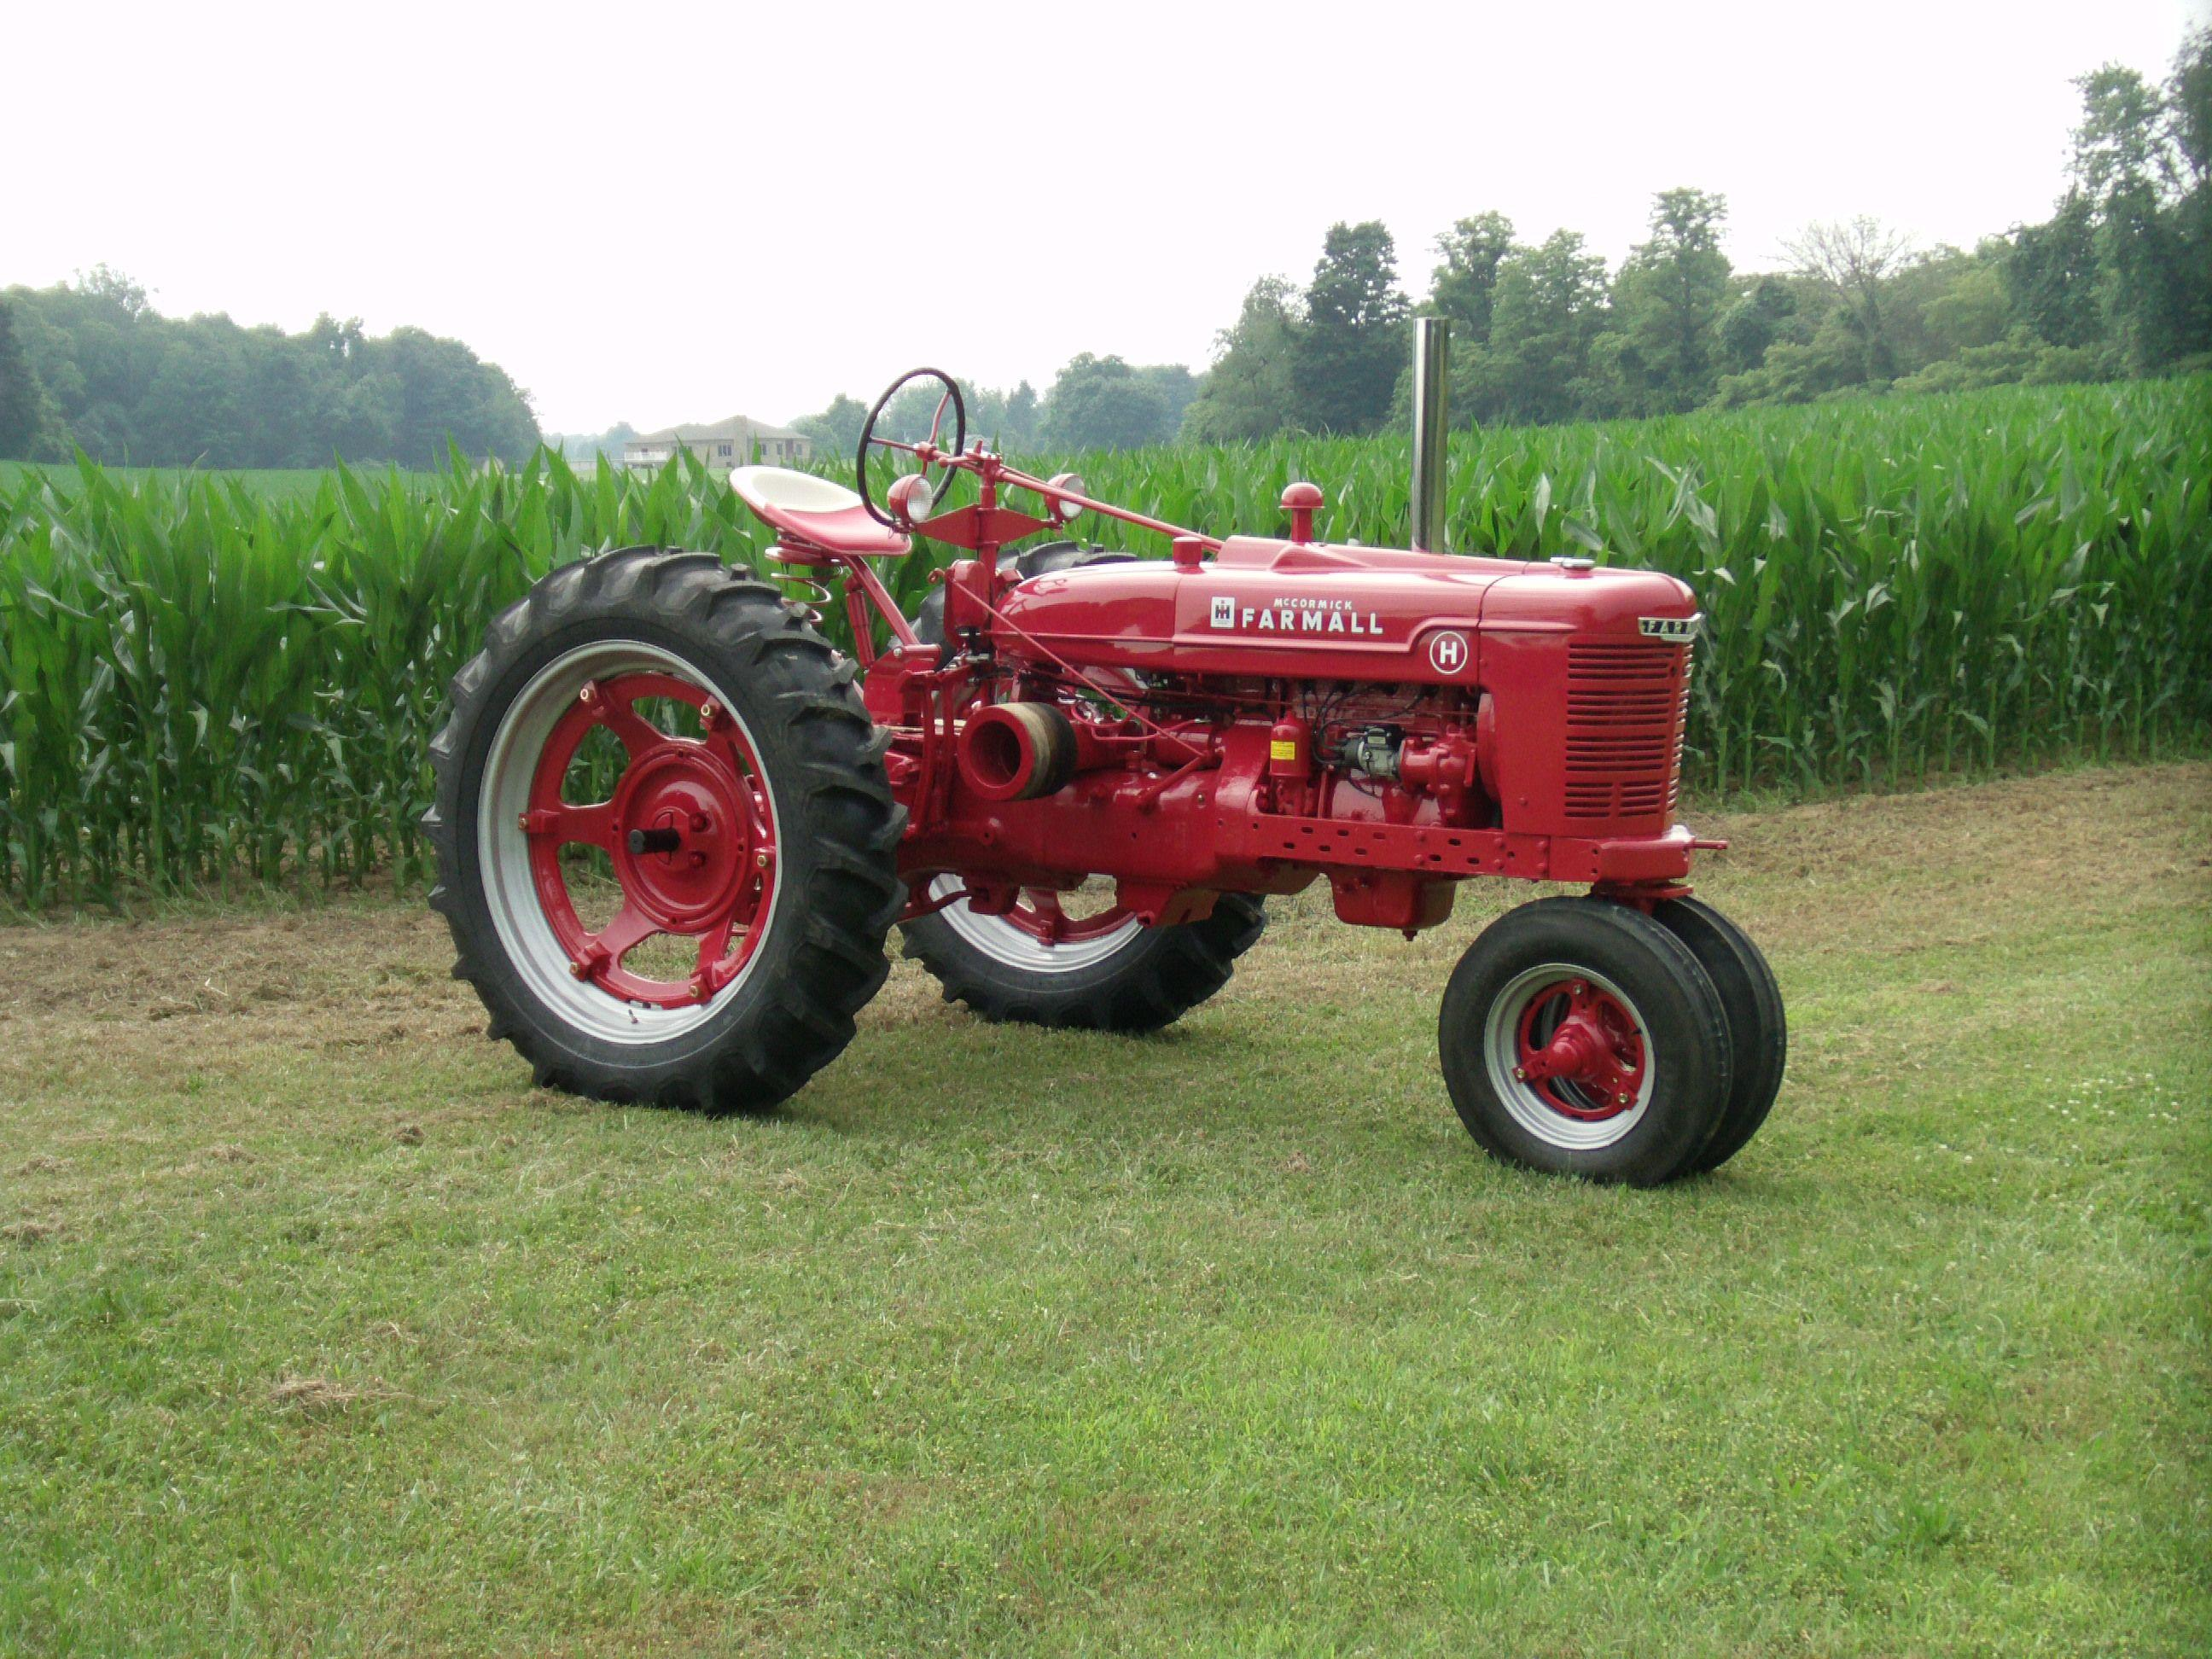 195 best images about Farmall Tractors on Pinterest | Old tractors ...